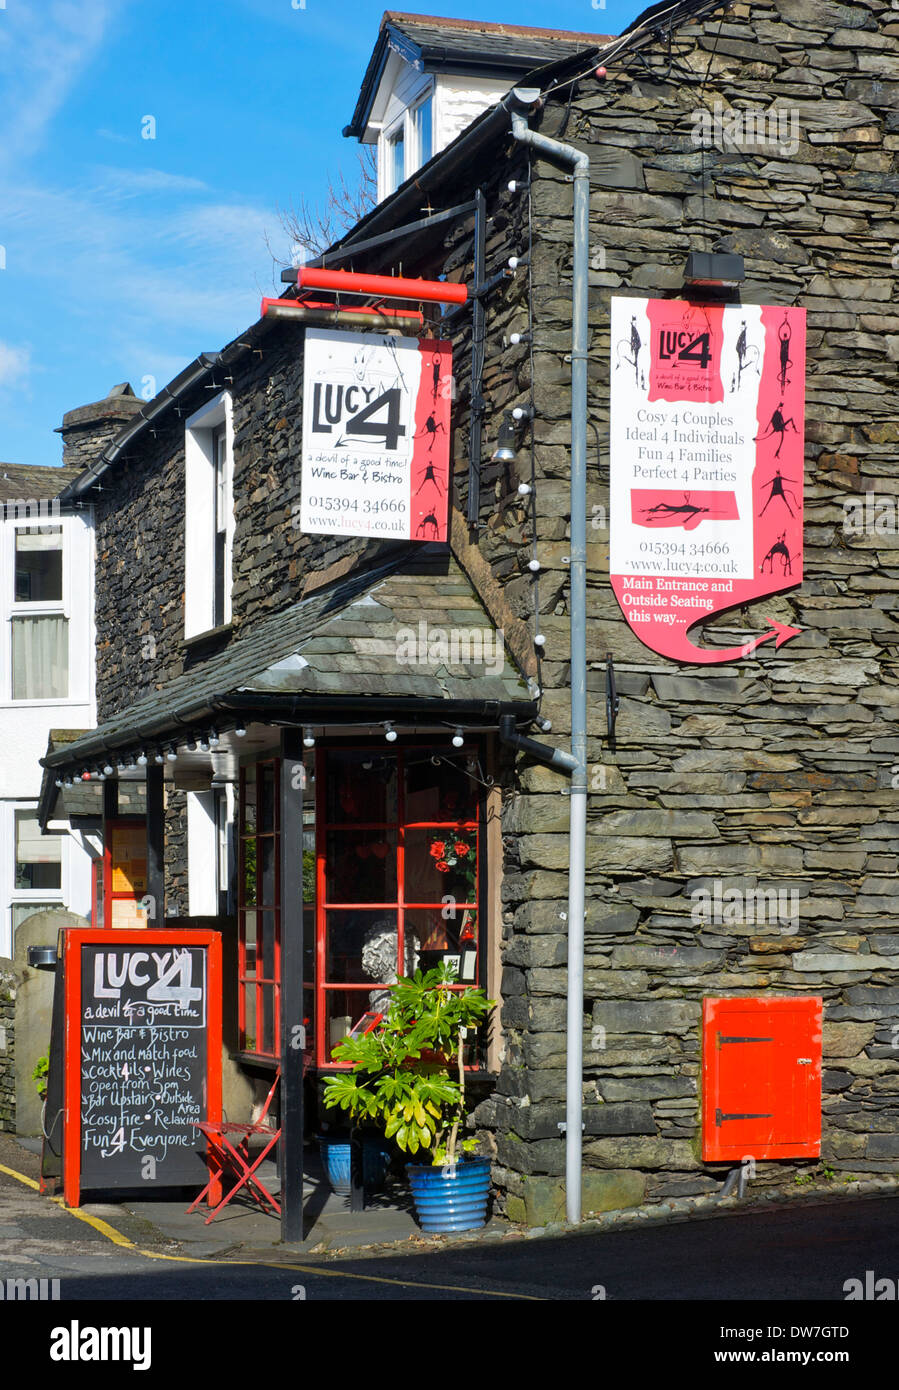 Lucy 4 restaurant and wine bar, Ambleside, Lake District National Park, Cumbria, England UK - Stock Image